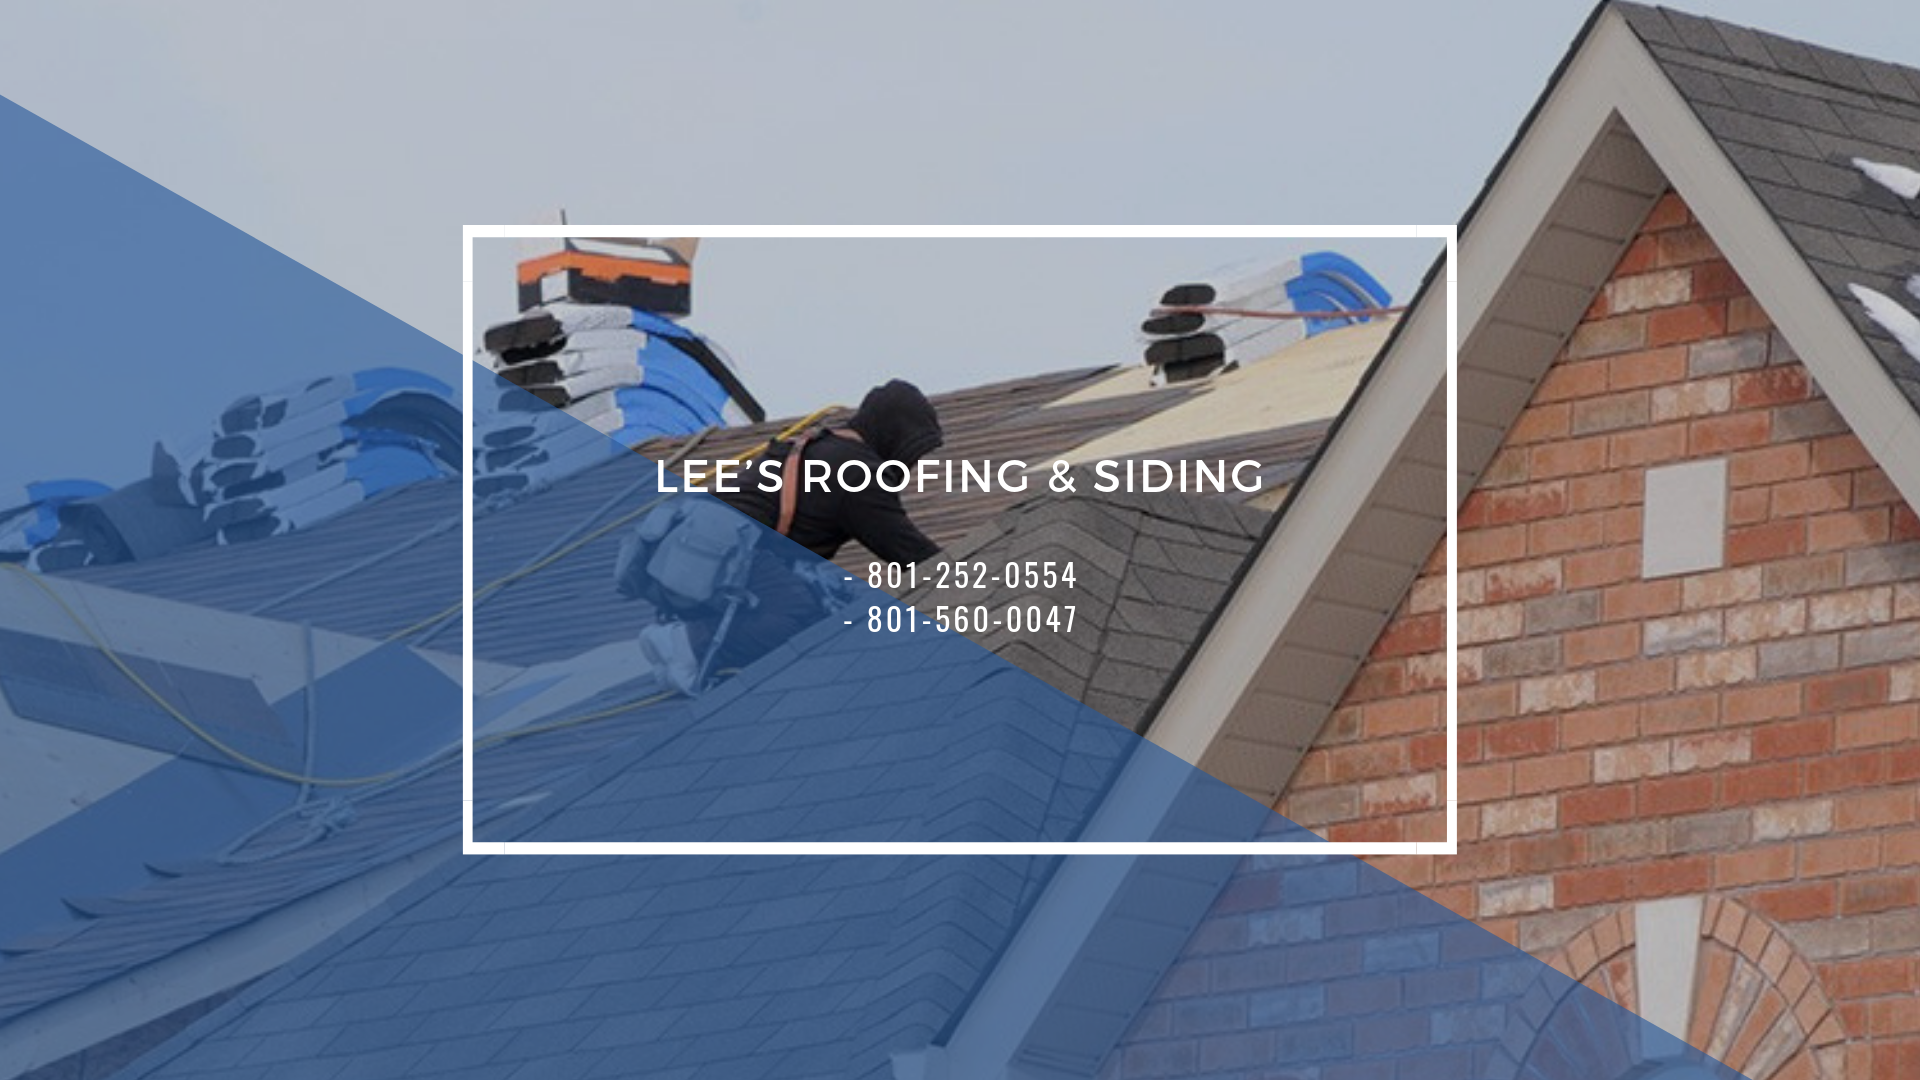 Lee S Roofing Siding Roof Installation Siding Siding Companies